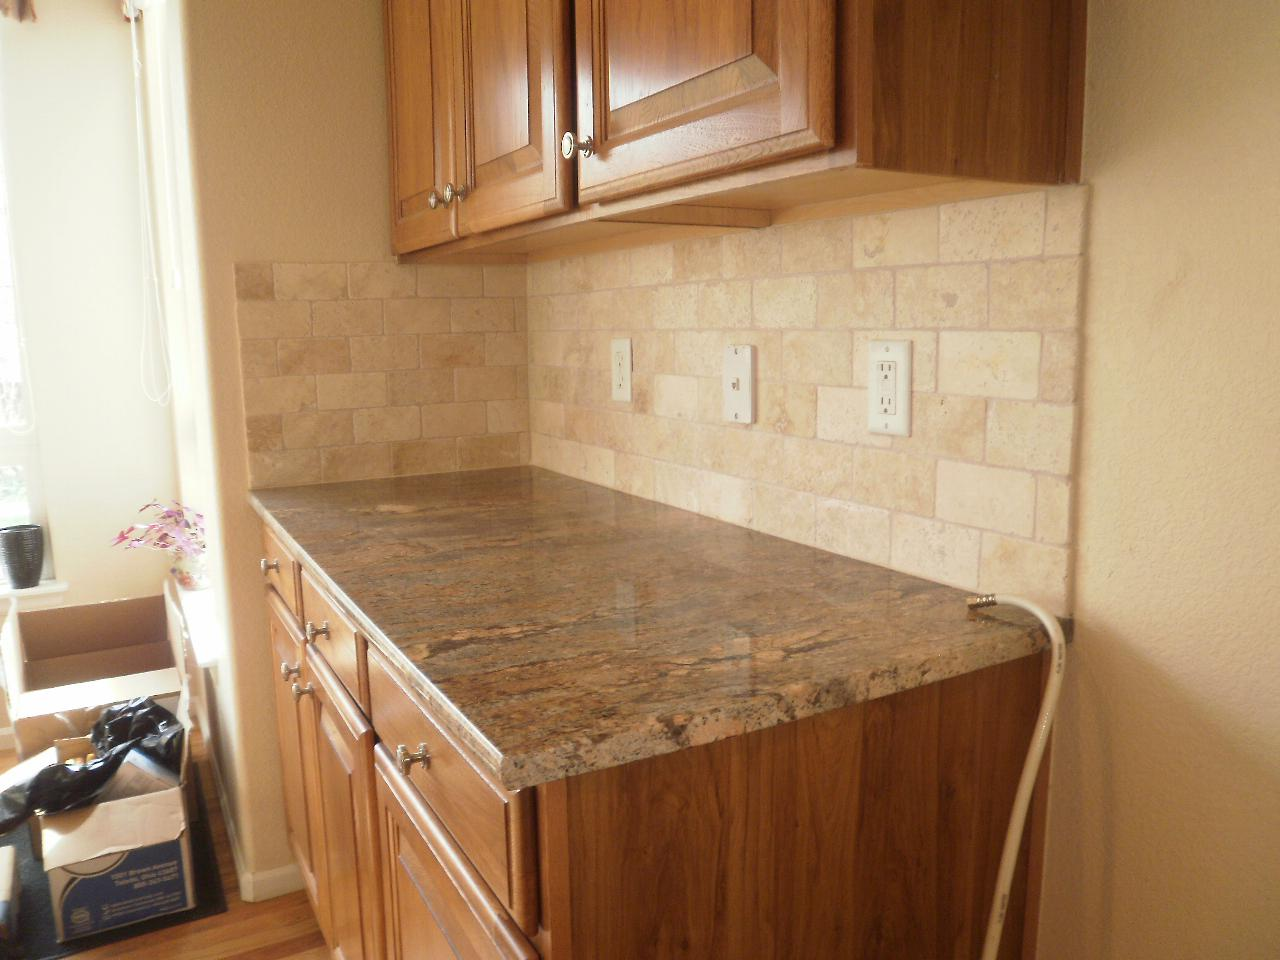 Image of: travertine mosaic tile backsplash